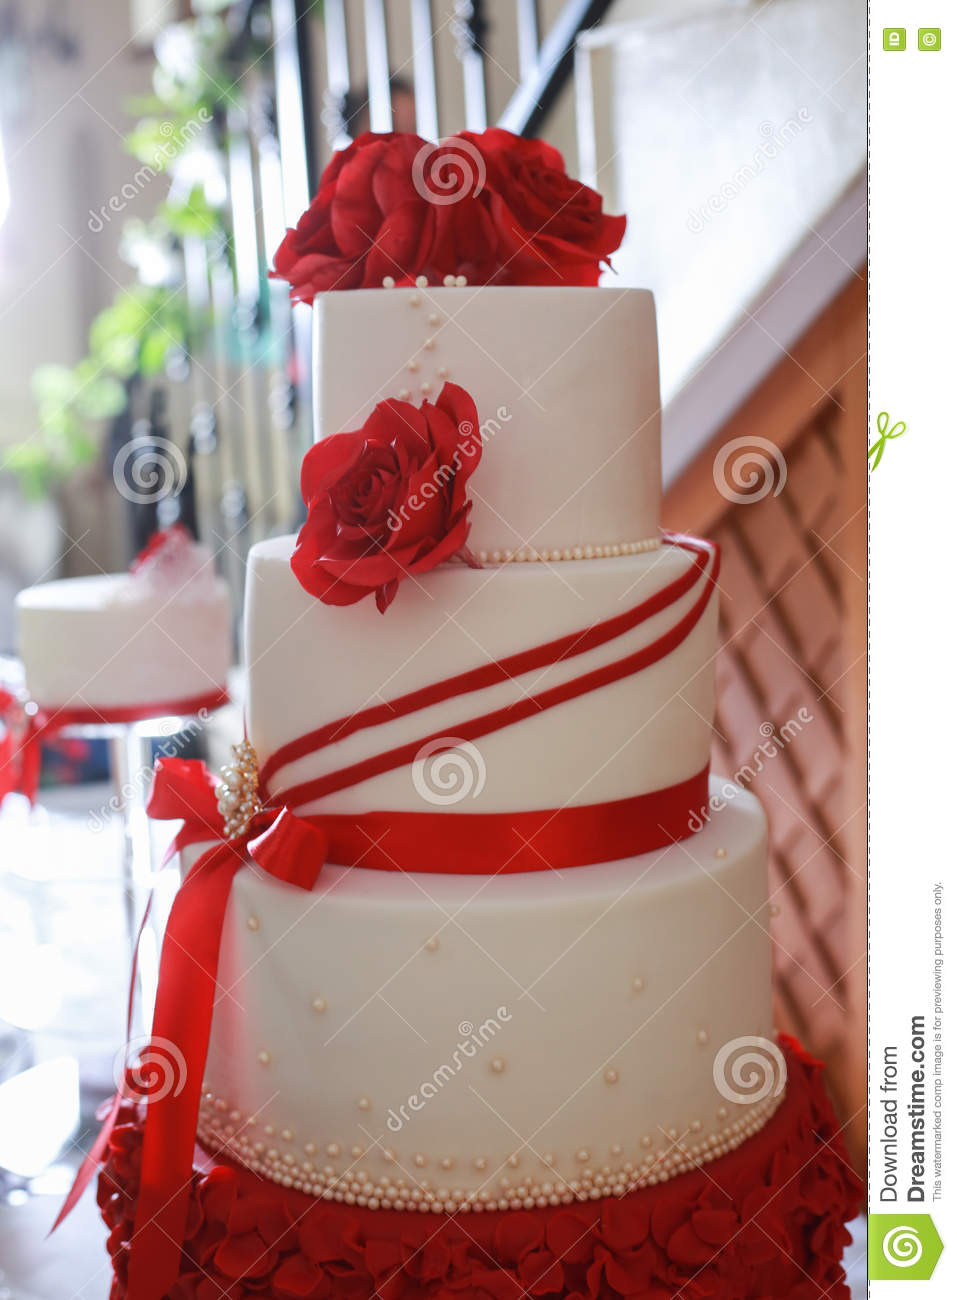 Detail of white layered wedding cake with red edible flowers stock detail of white layered wedding cake with red edible flowers mightylinksfo